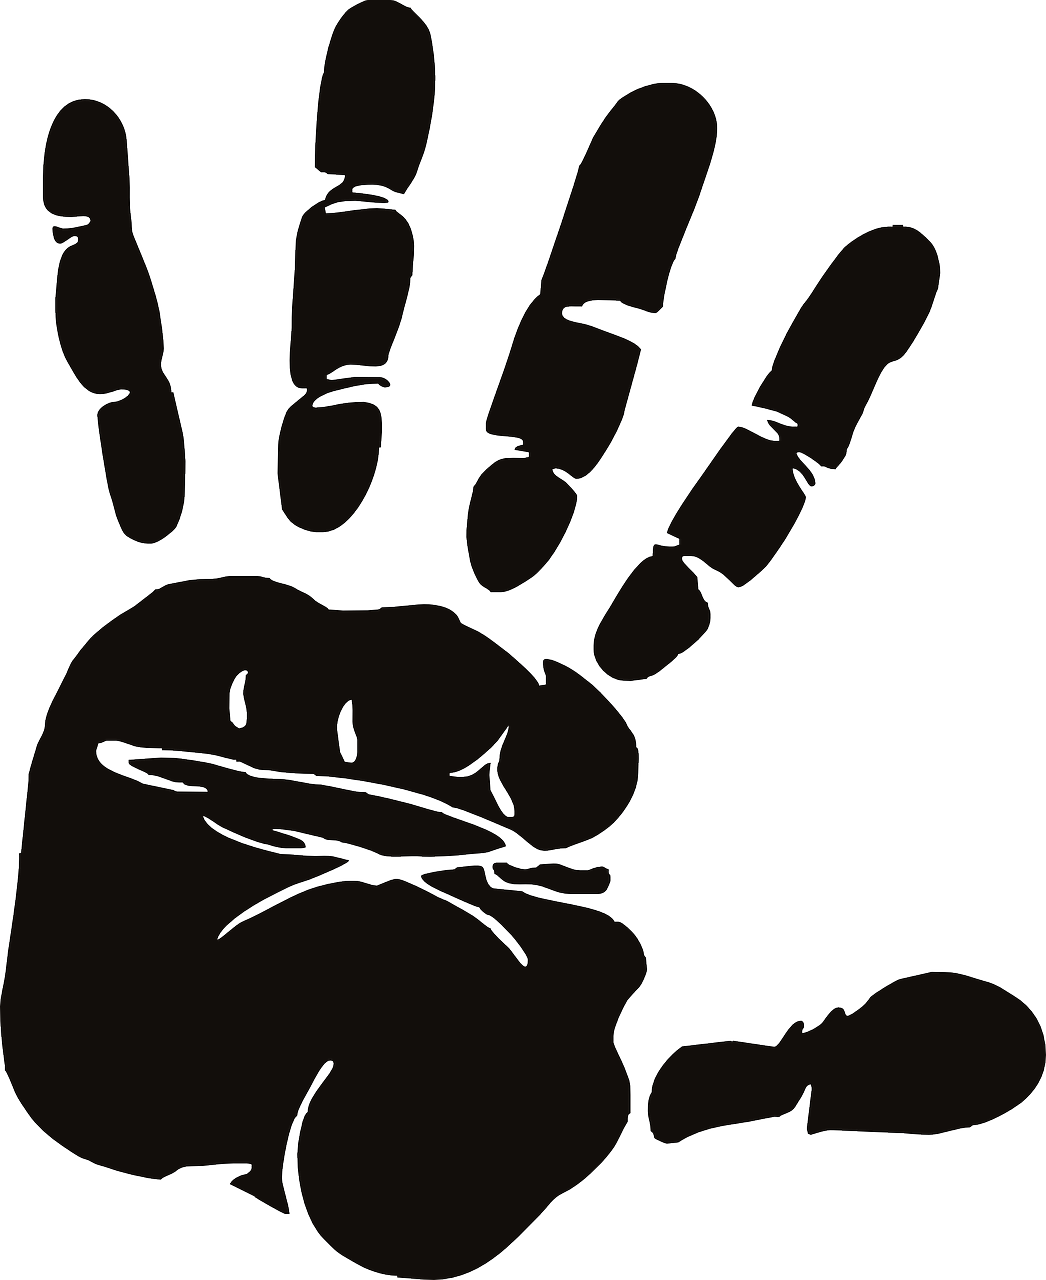 Free image on pixabay. Handprint clipart colour hand